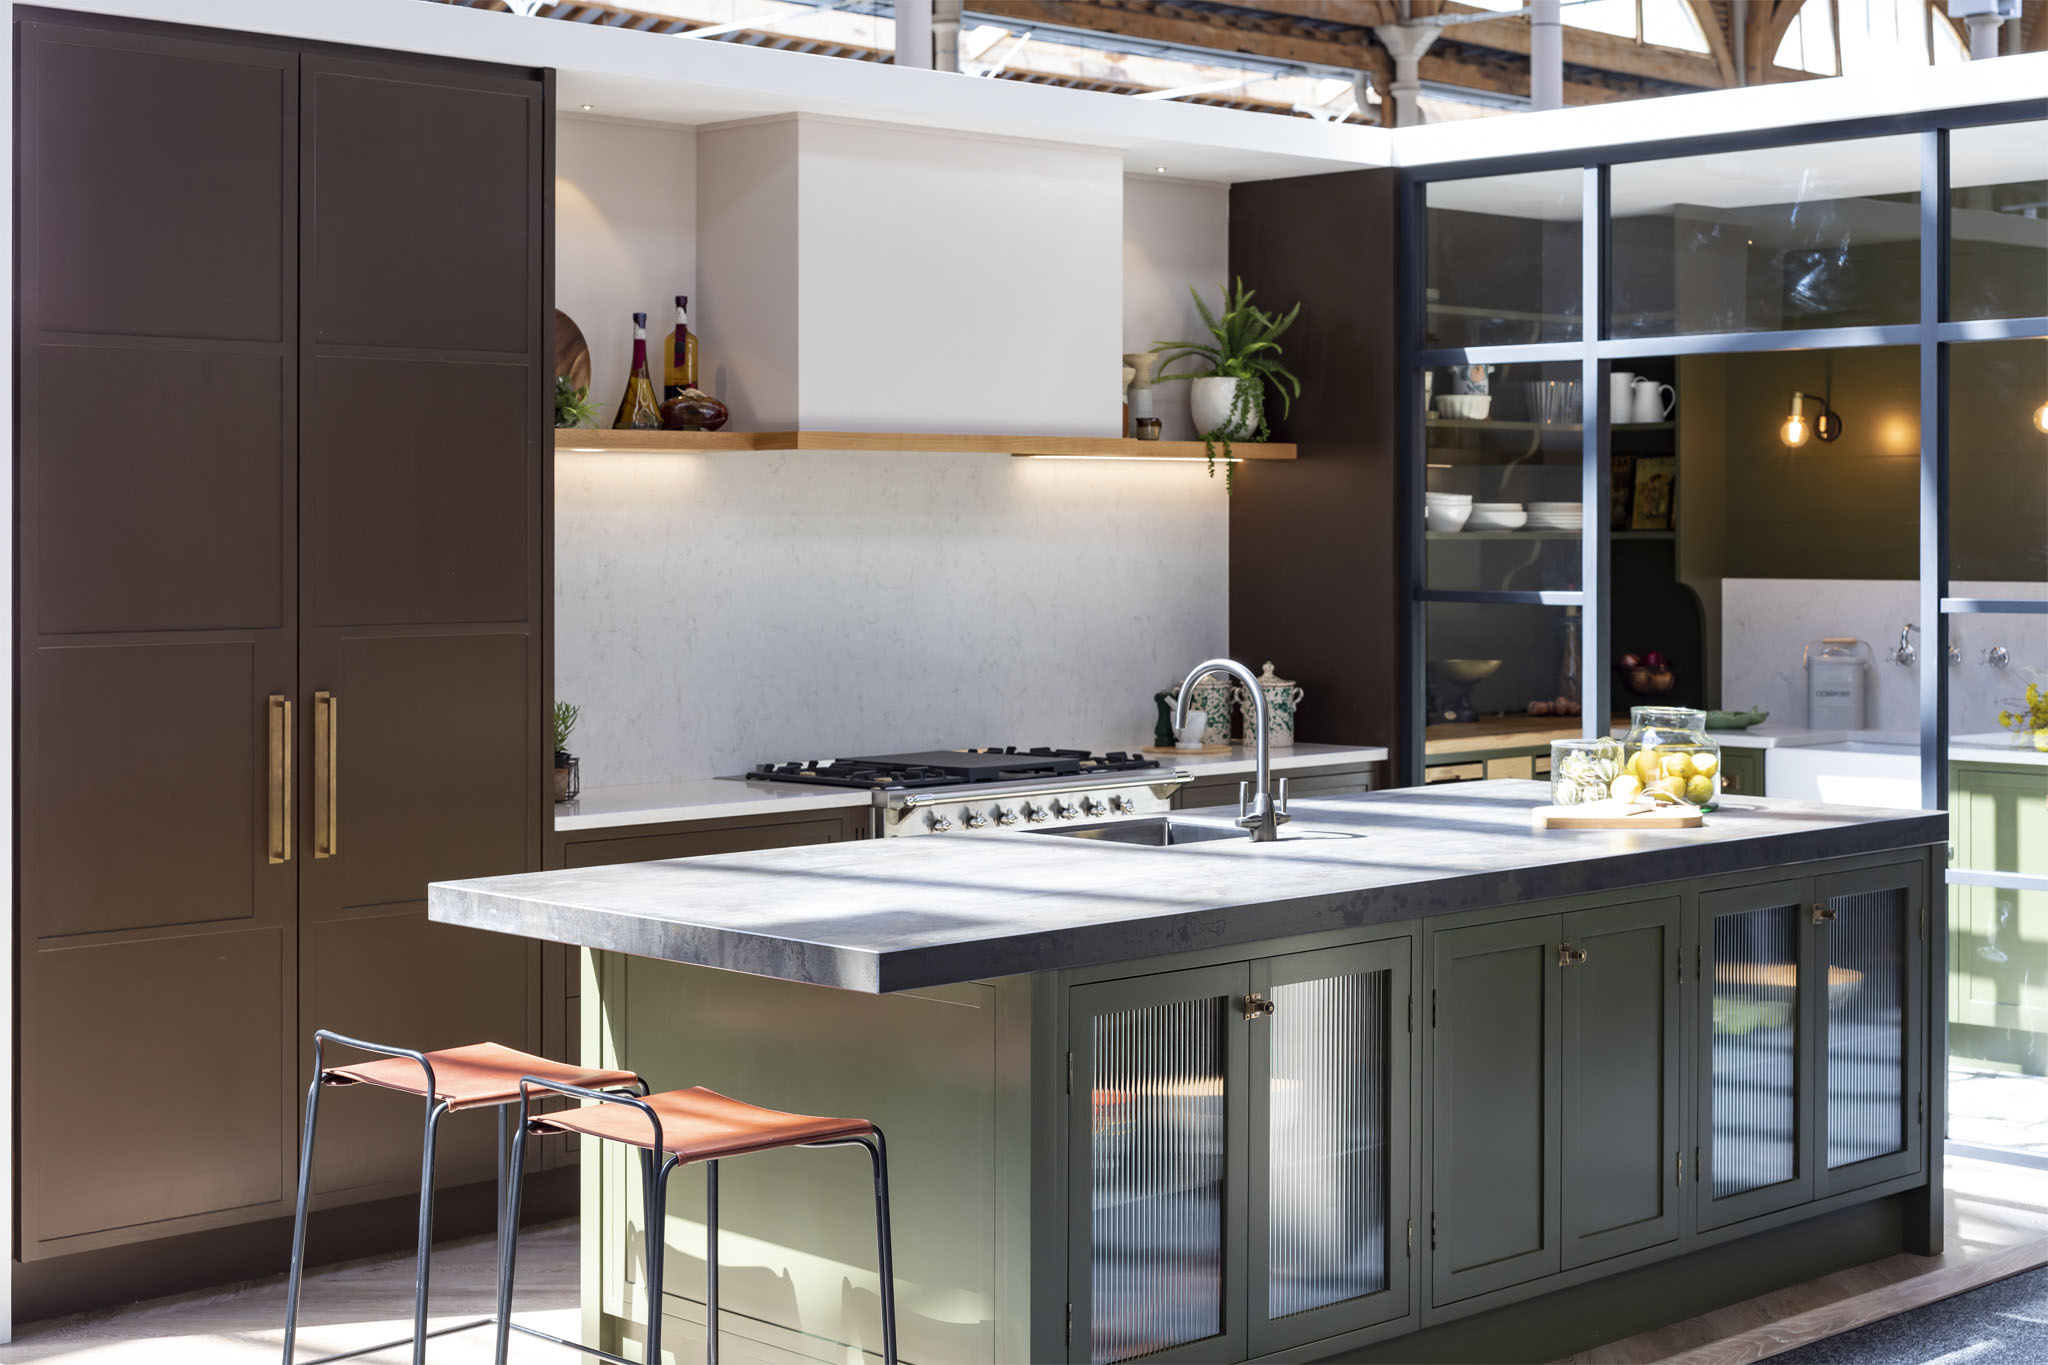 Michael Farrell Kitchens